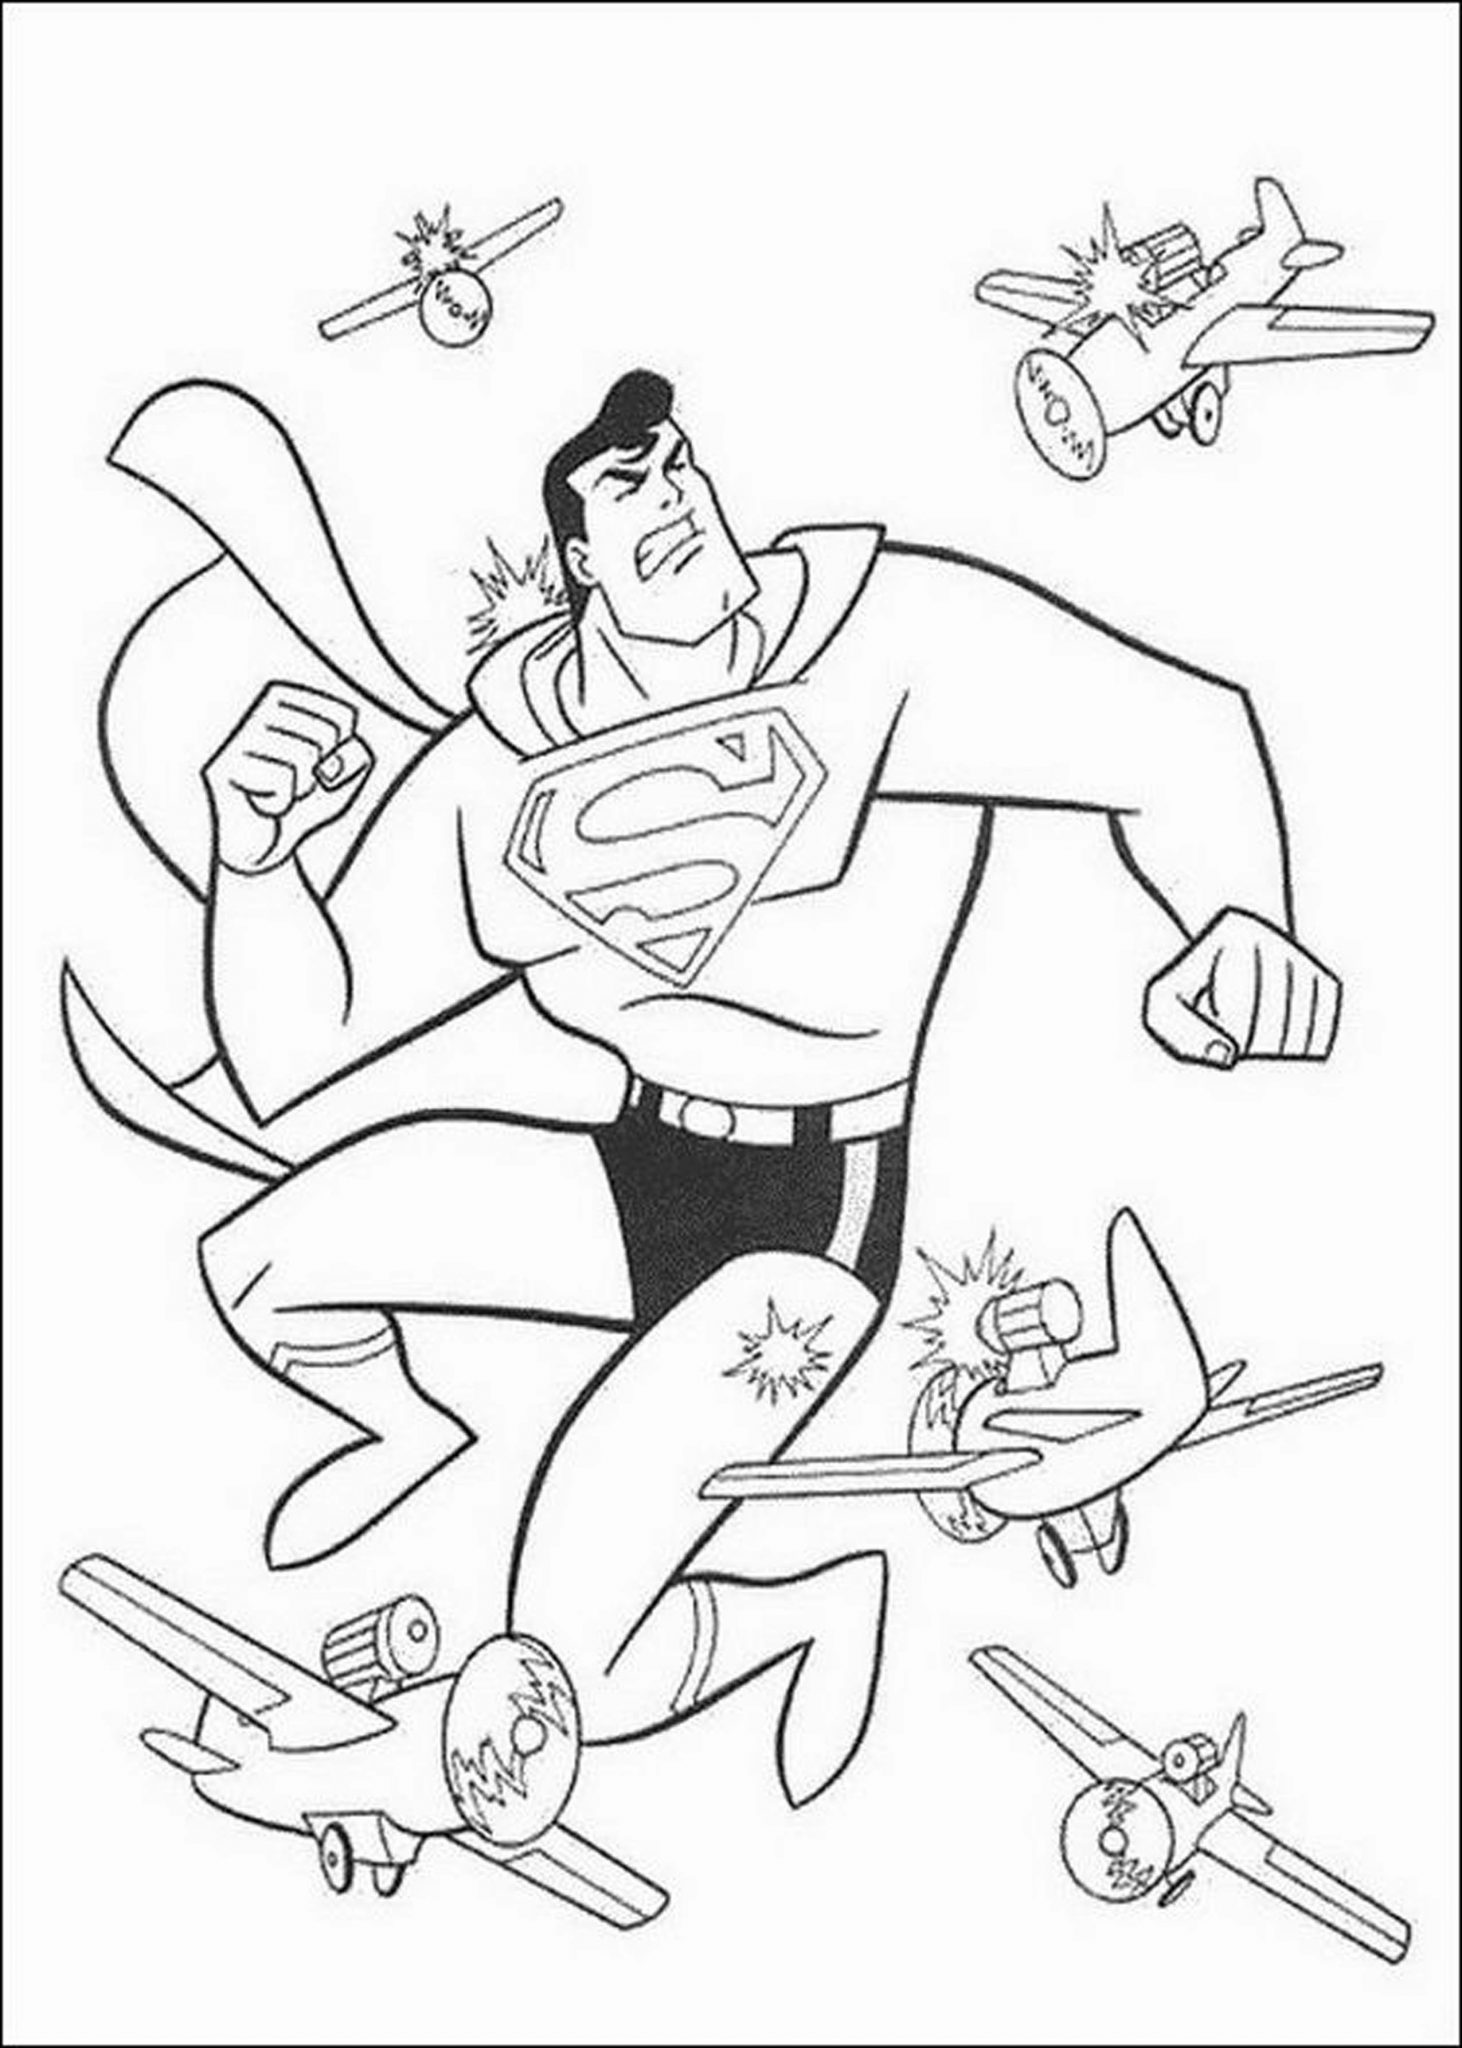 Coloring Pages for Boys & Training Shopping For Children ...